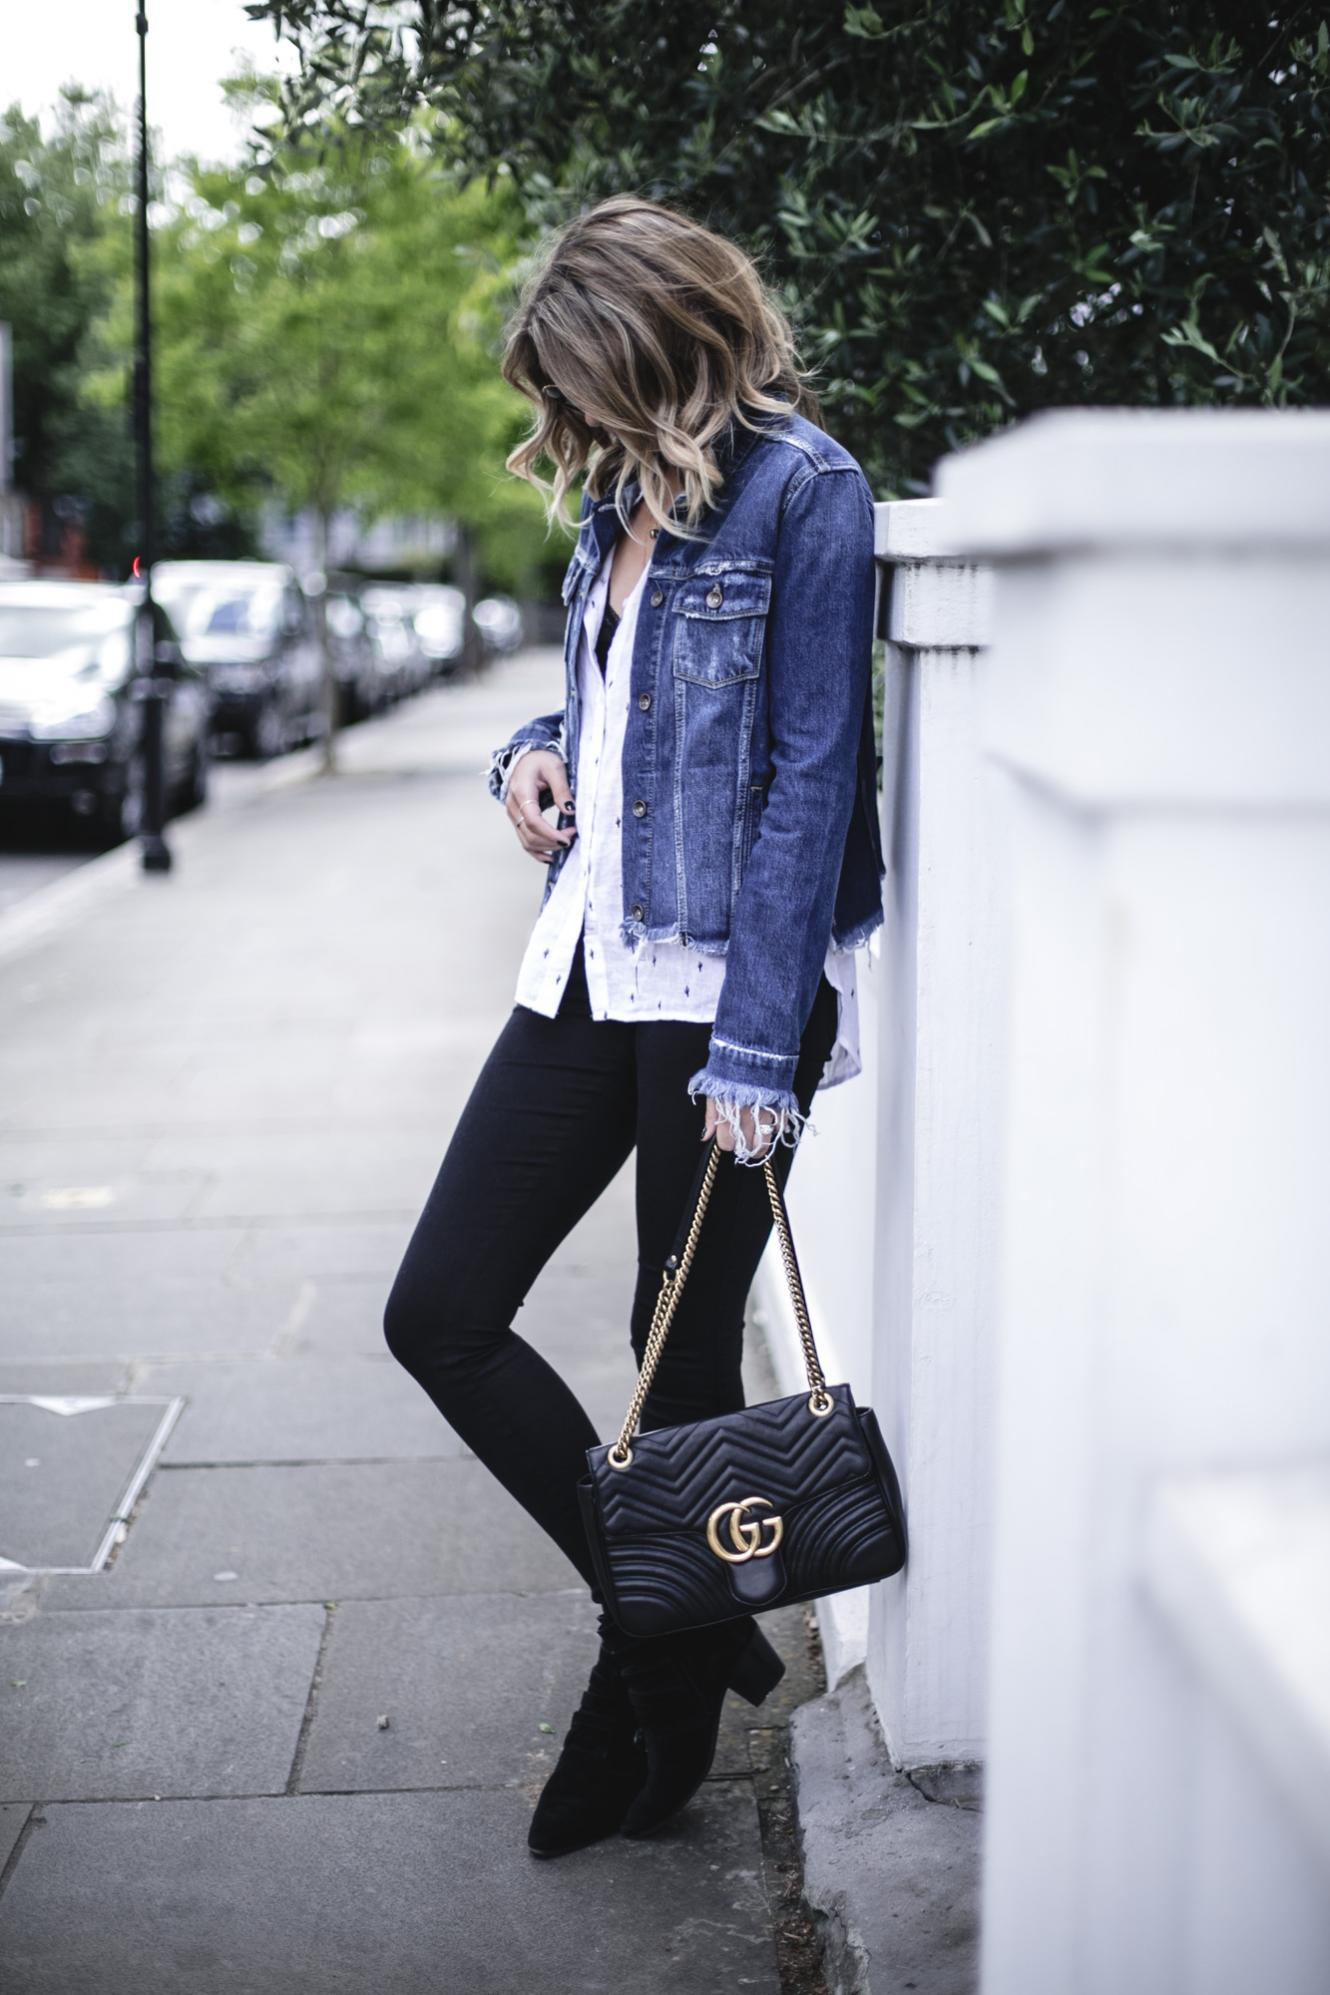 Emma Hill wears Paige frayed denim jacket, Rails white linen cactus print shirt, black skinny jeans, Gucci marmont bag, black buckle ankle boots, casual Spring outfit